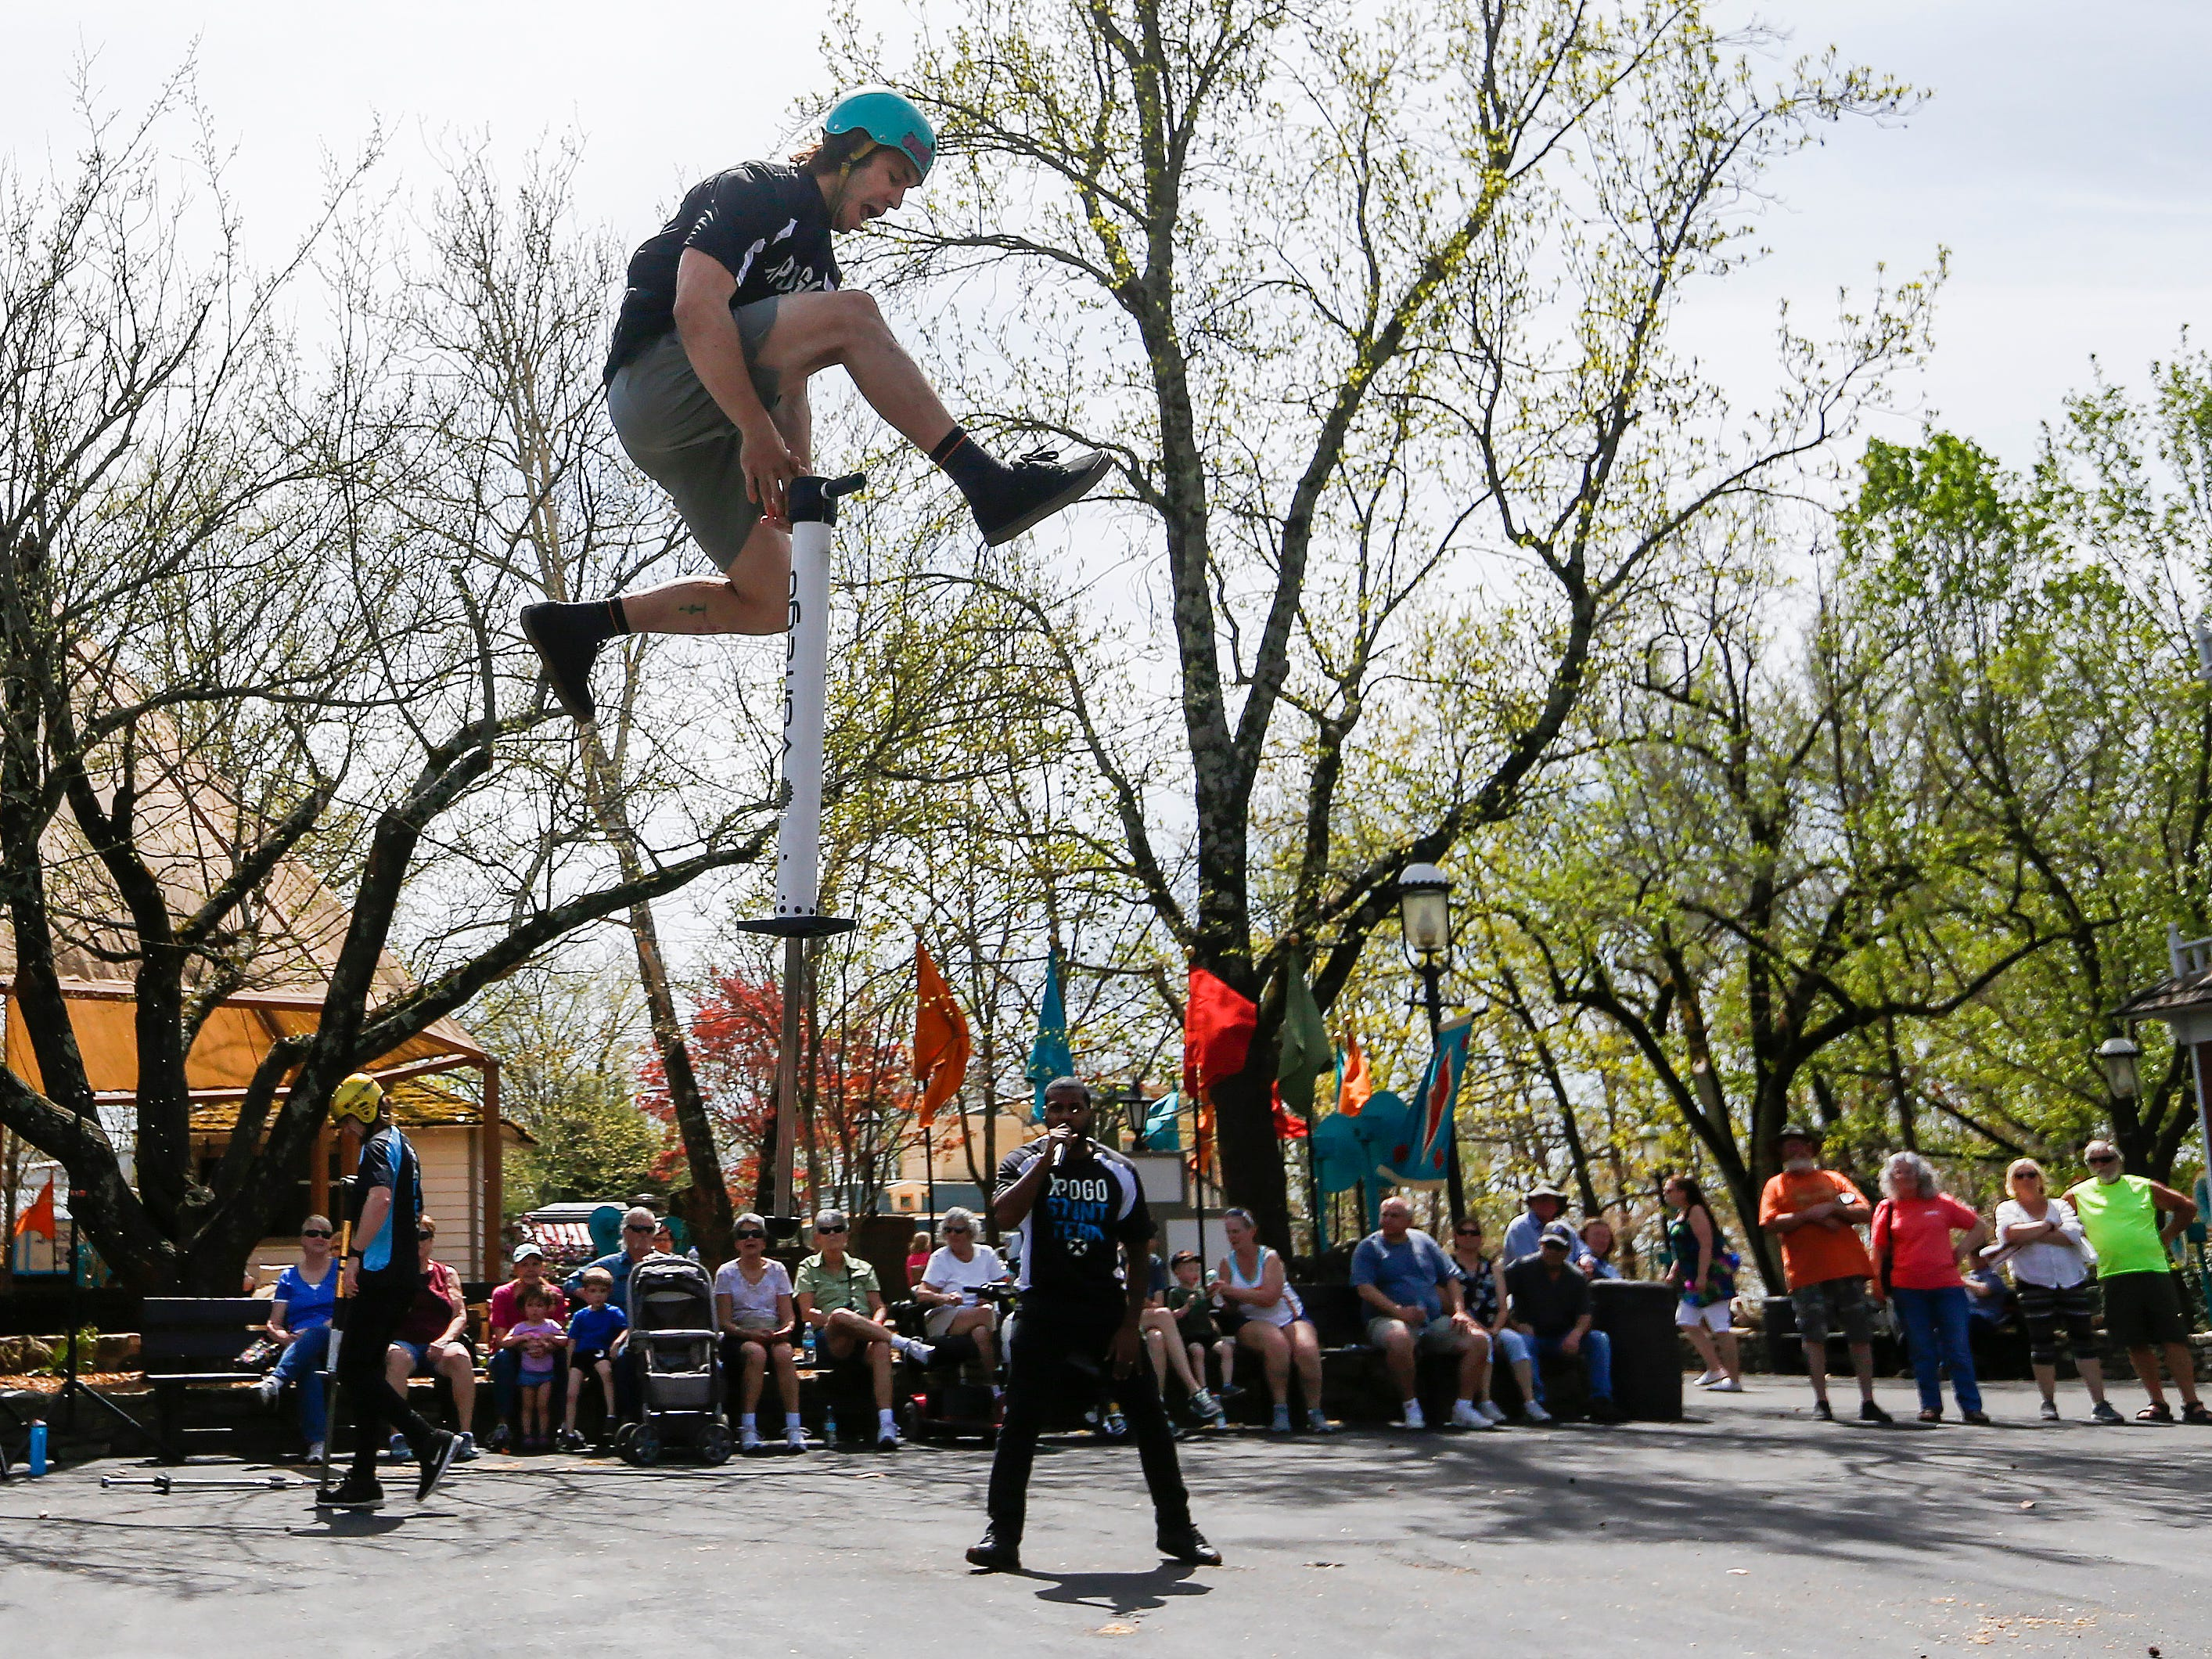 Russ Kaus, a member of the X-Pogo Stunt Team, performs as a part of Festival of Wonder on Wednesday, April 10, 2019 at Silver Dollar City. The event runs Wednesdays through Sundays, April 10-28.